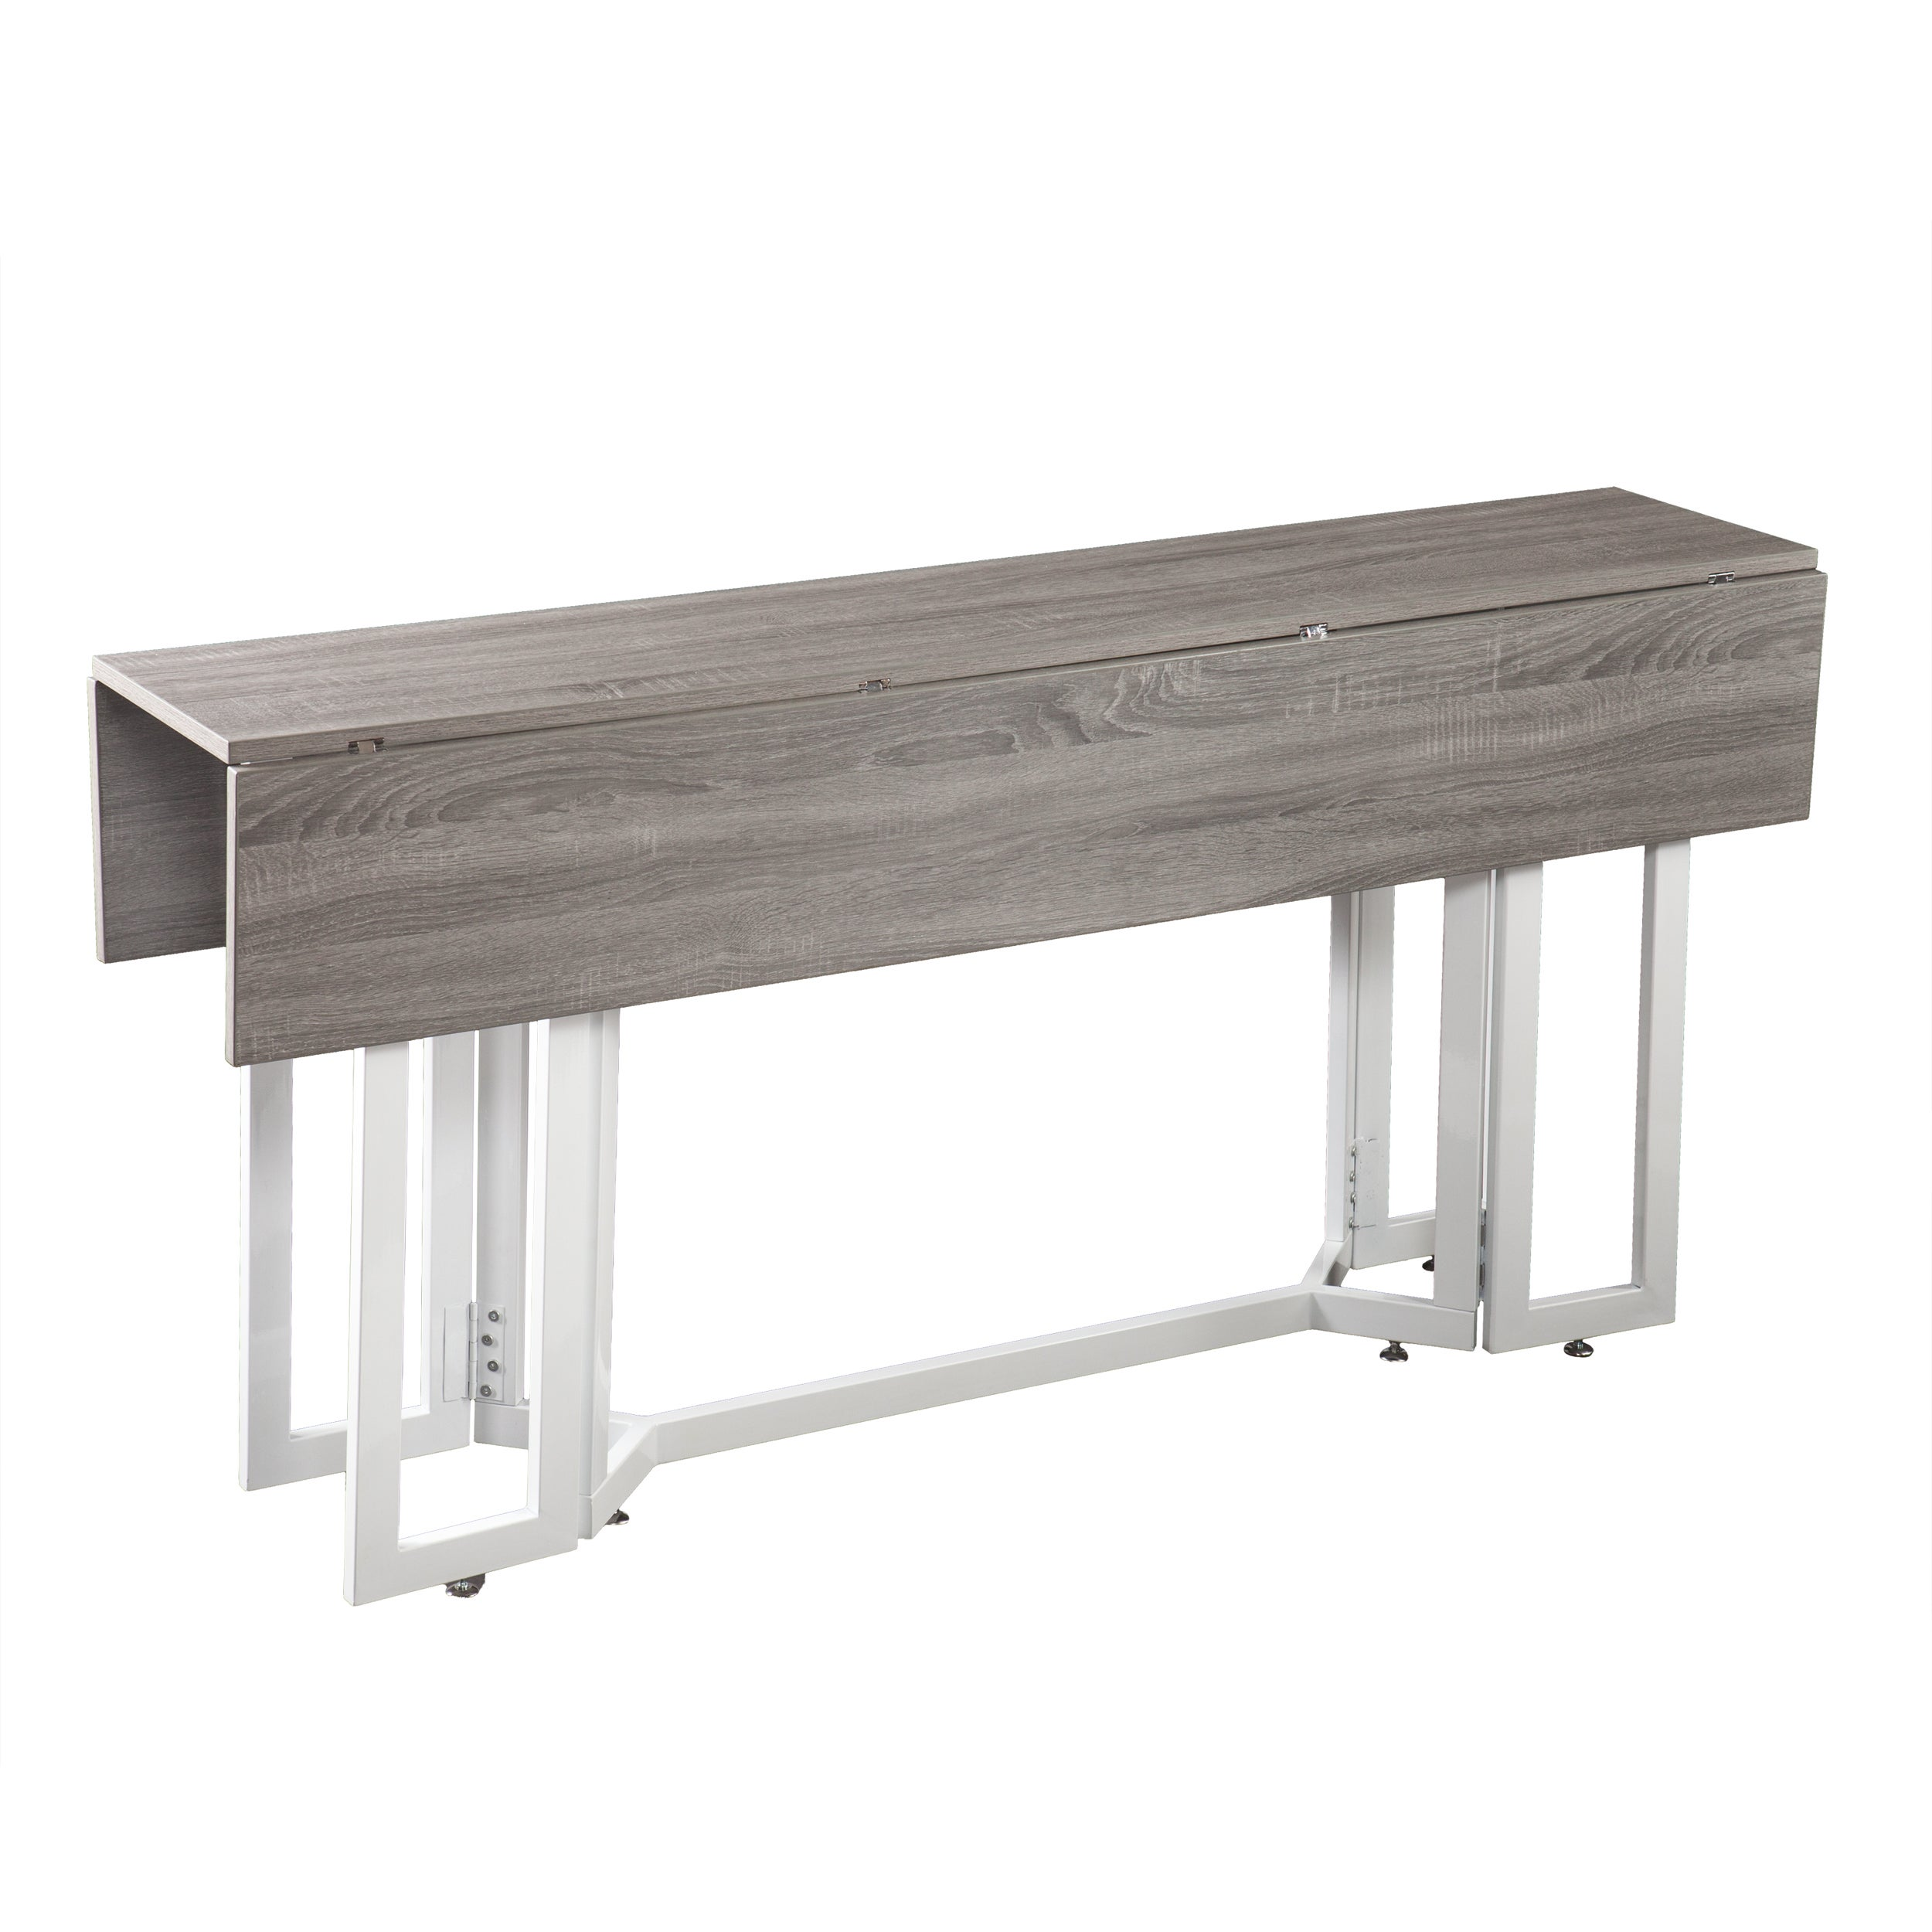 Holly Martin Driness Drop Leaf Table Free Shipping Today  # Muebles Holly Hunt